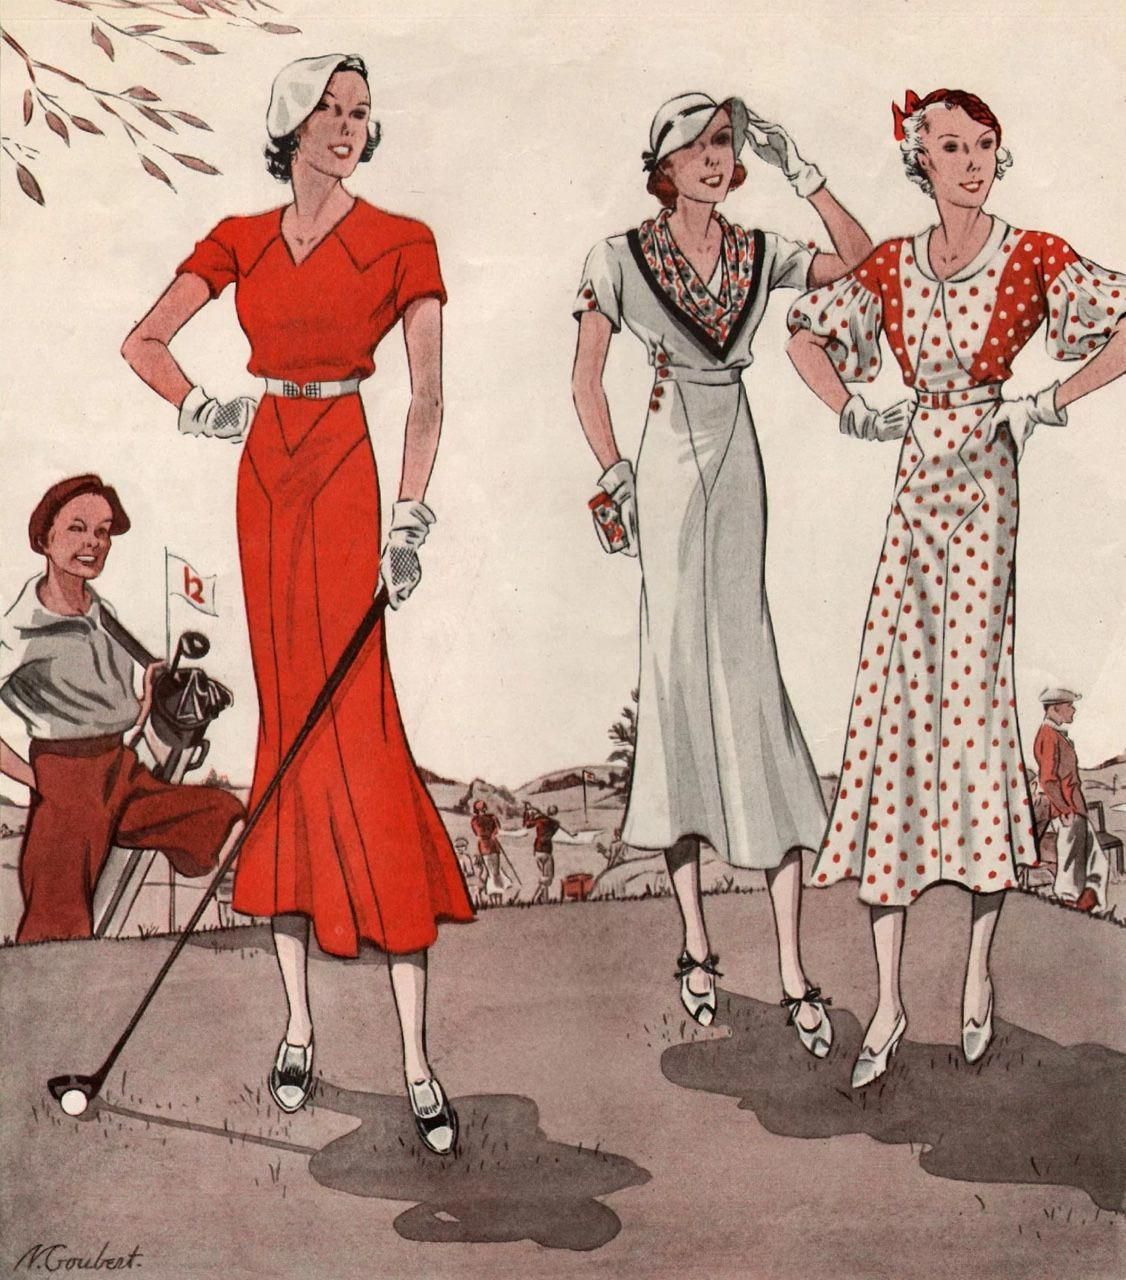 ladies golf,golf outfits women,golf fashion,golf clothes,golf style,golf wear #golfwear #golfhumor